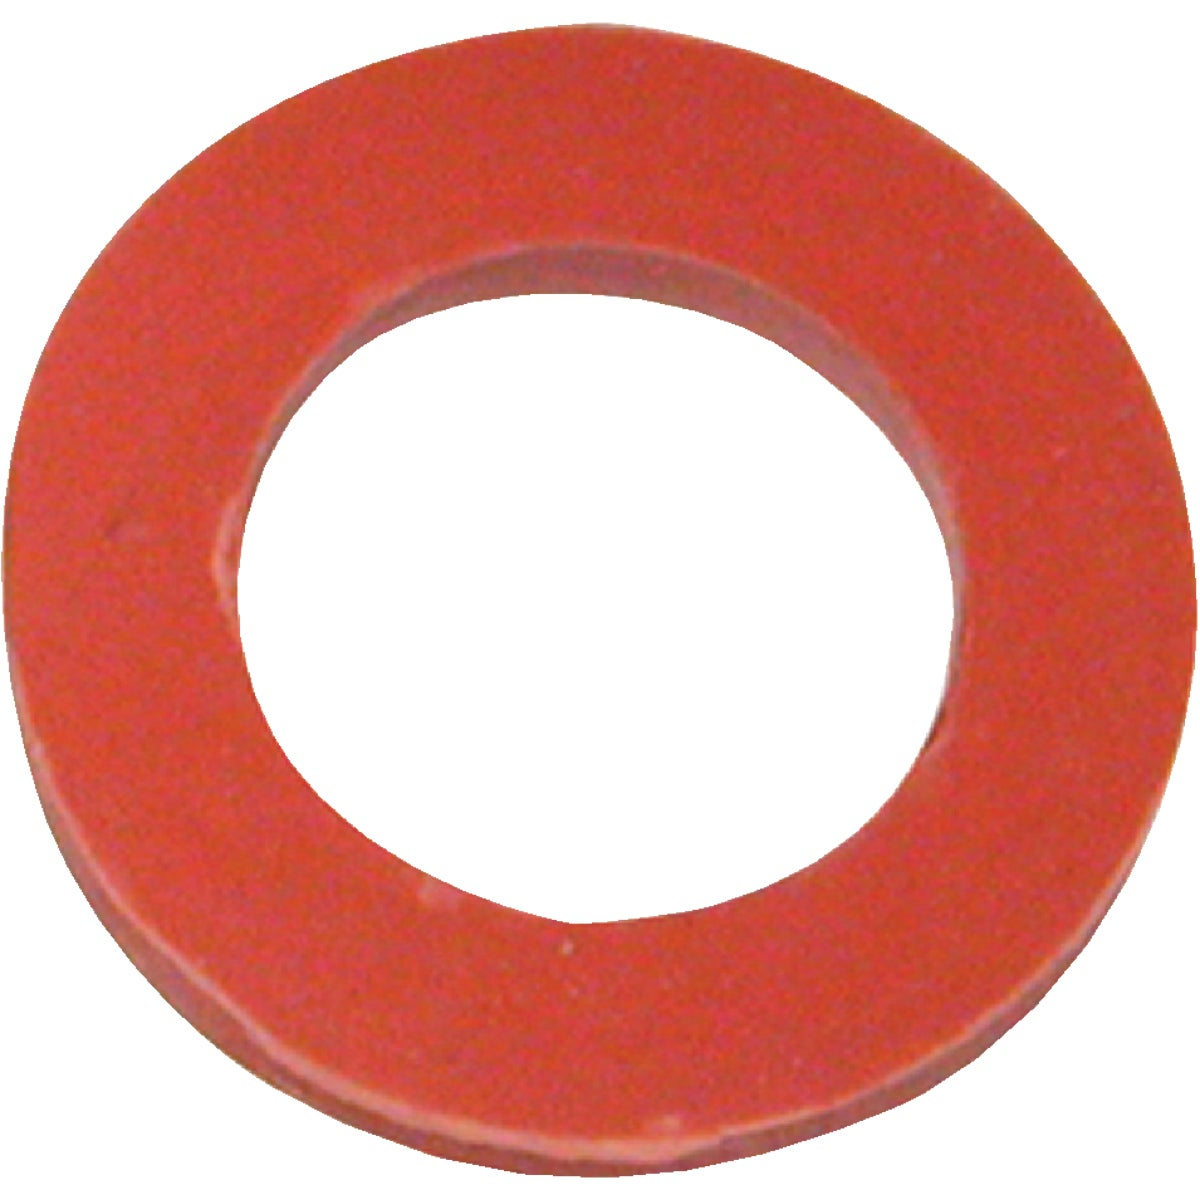 RND RUBBER HOSE WASHER - 36333B by Danco Perfect Match